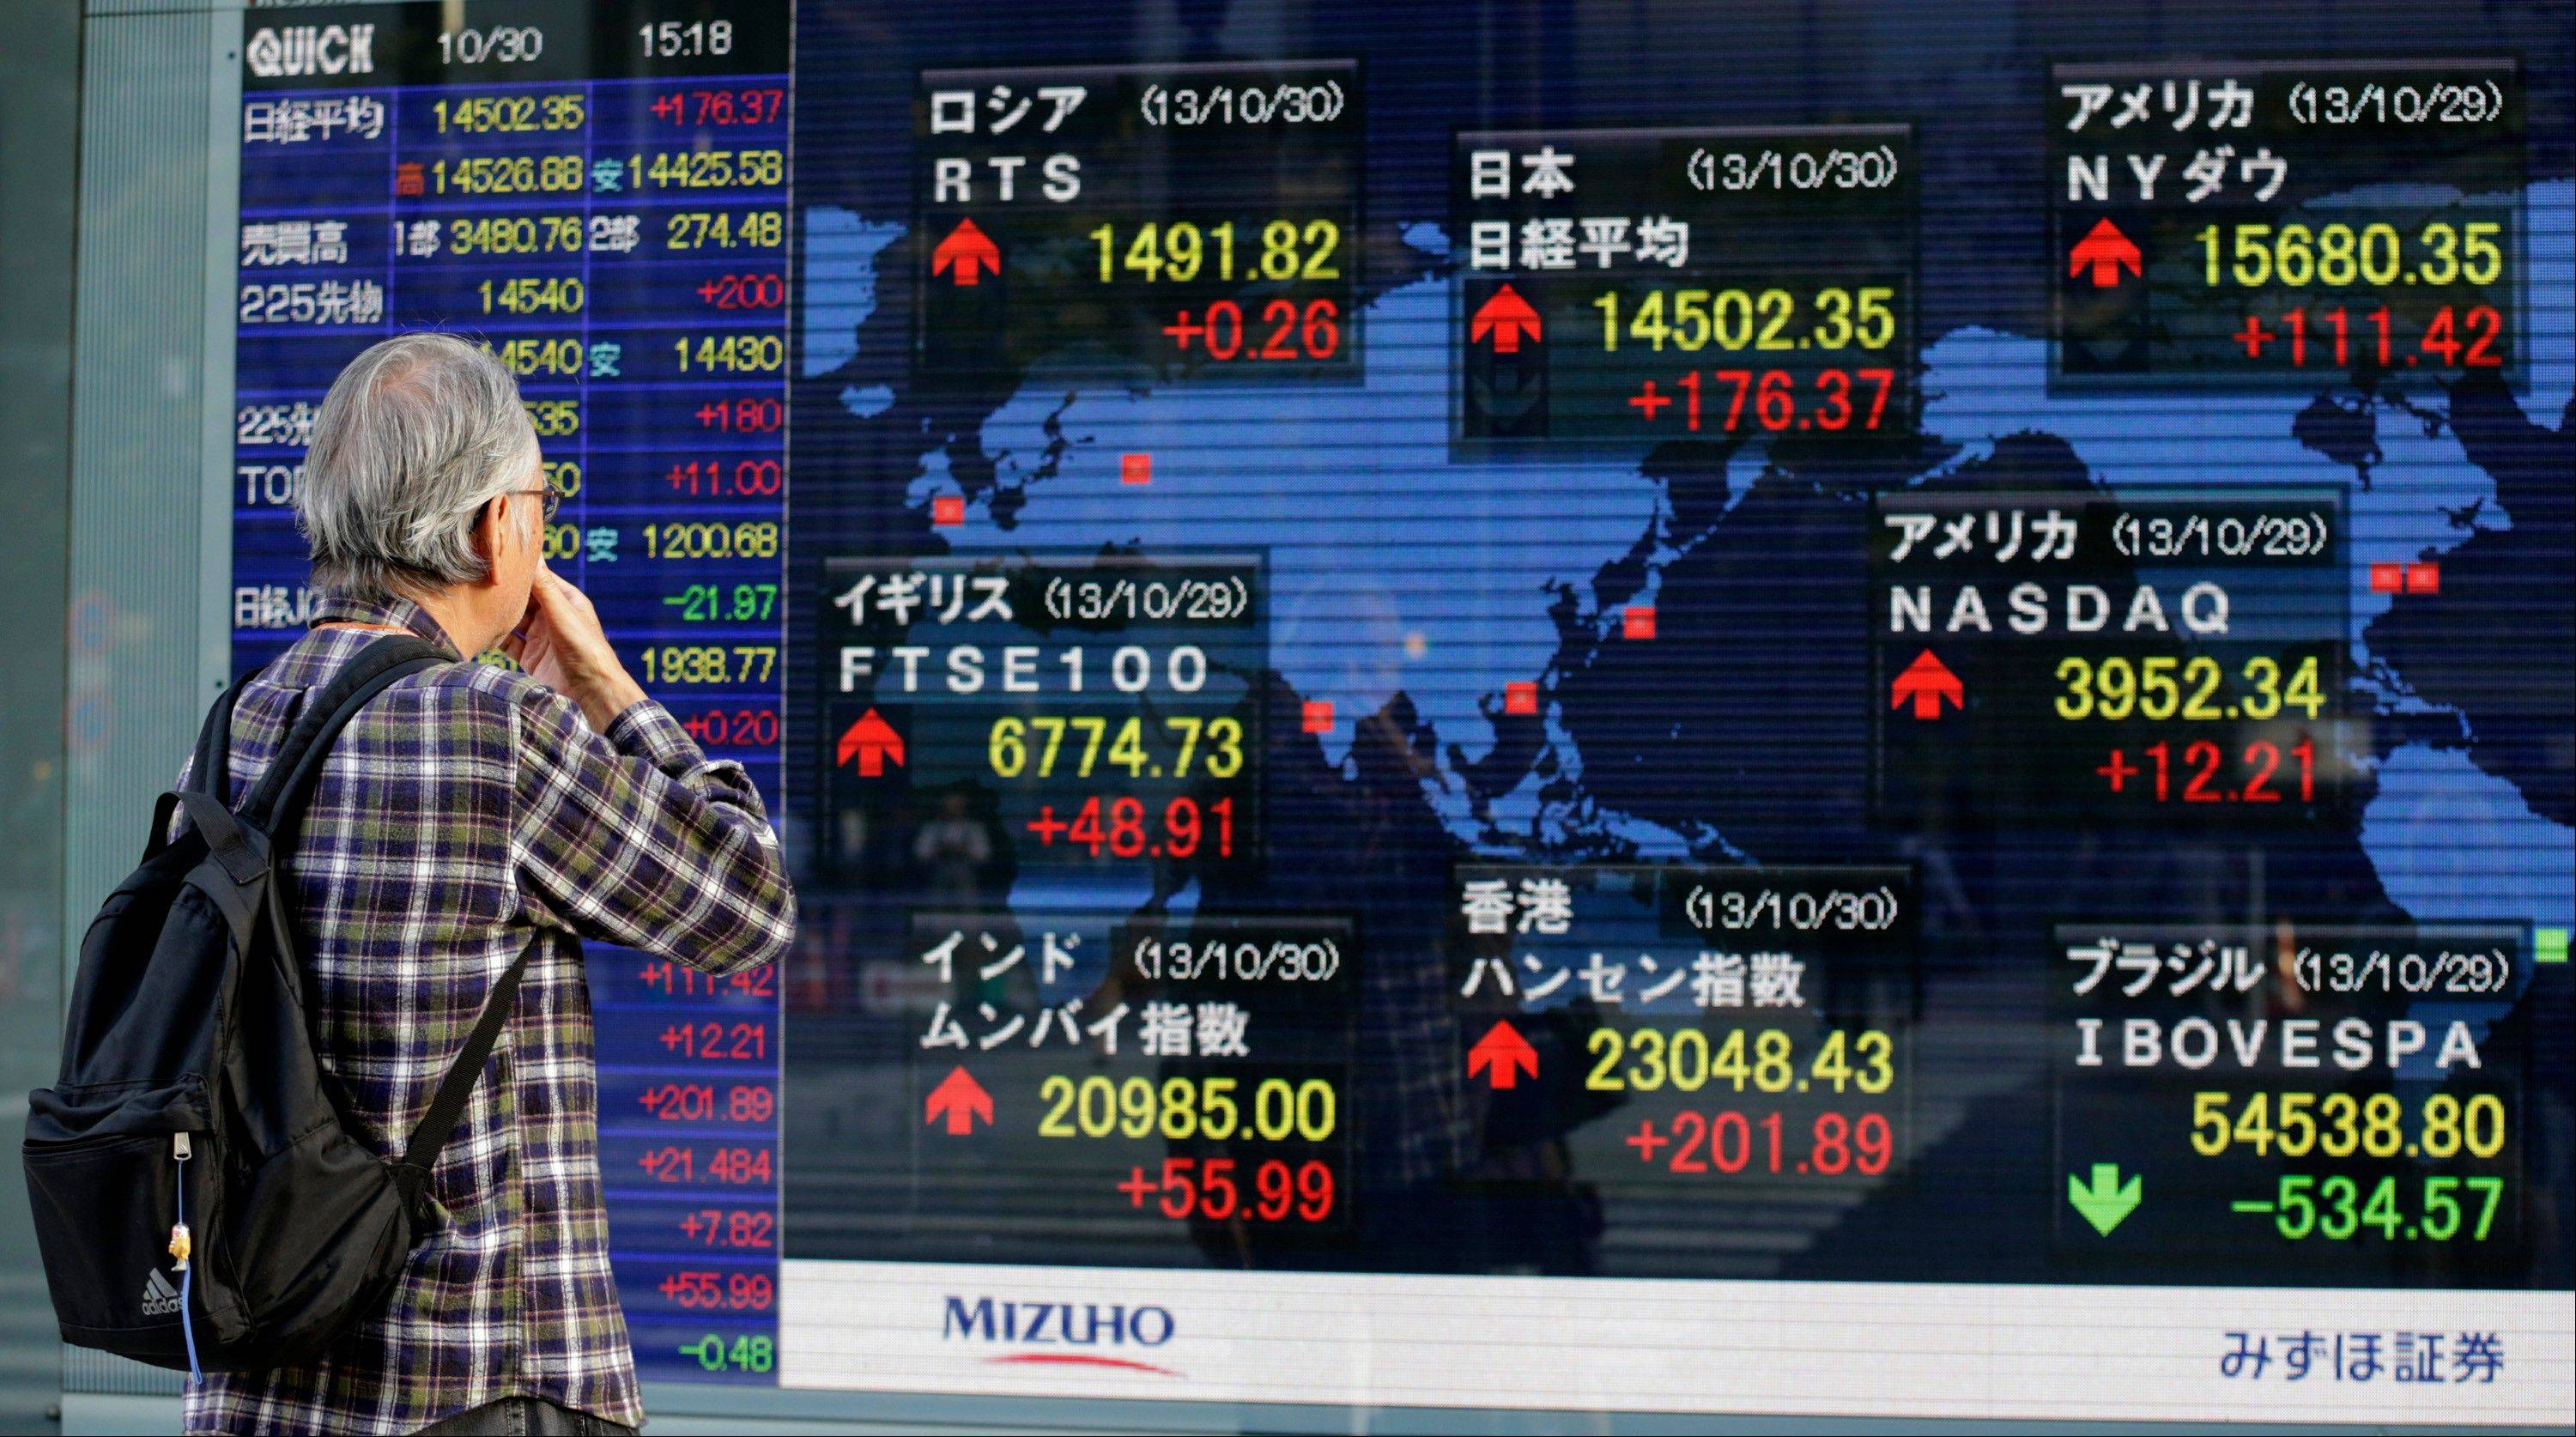 A man watches an electronic stock indicator in Tokyo.